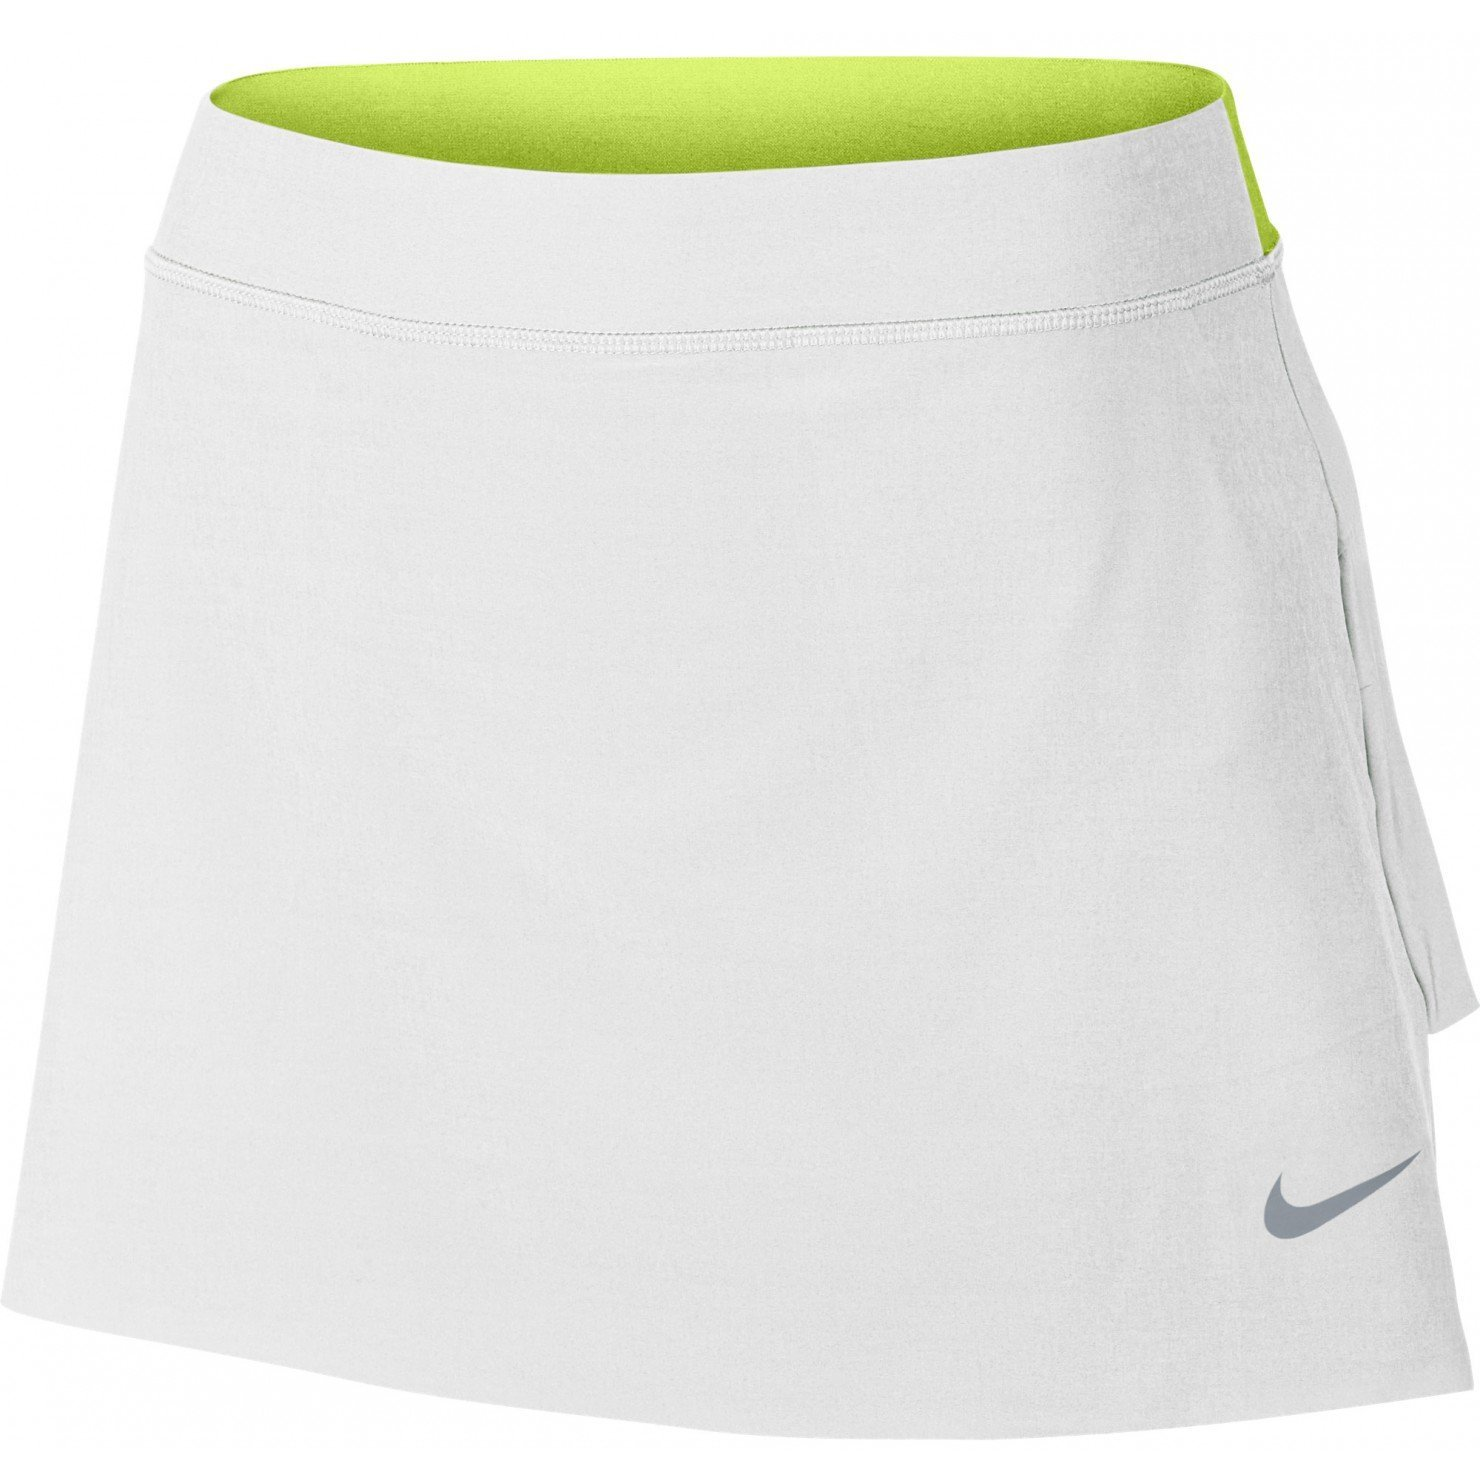 online store a80a9 2d21f Get Quotations · Nike Womens Innovation Links Skort White Volt